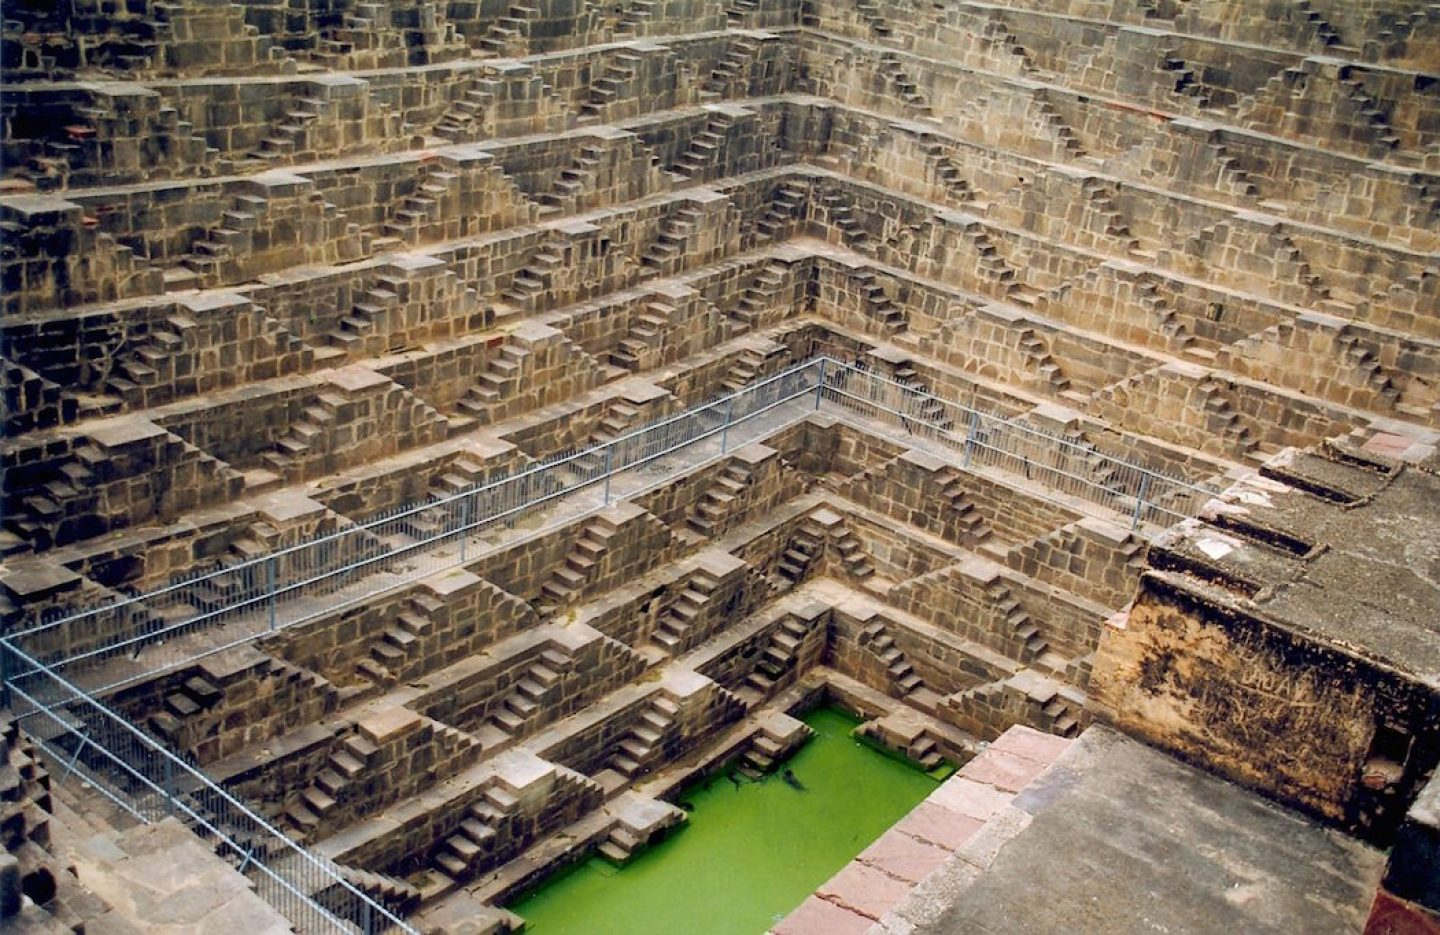 2.stepwells_chand-baori